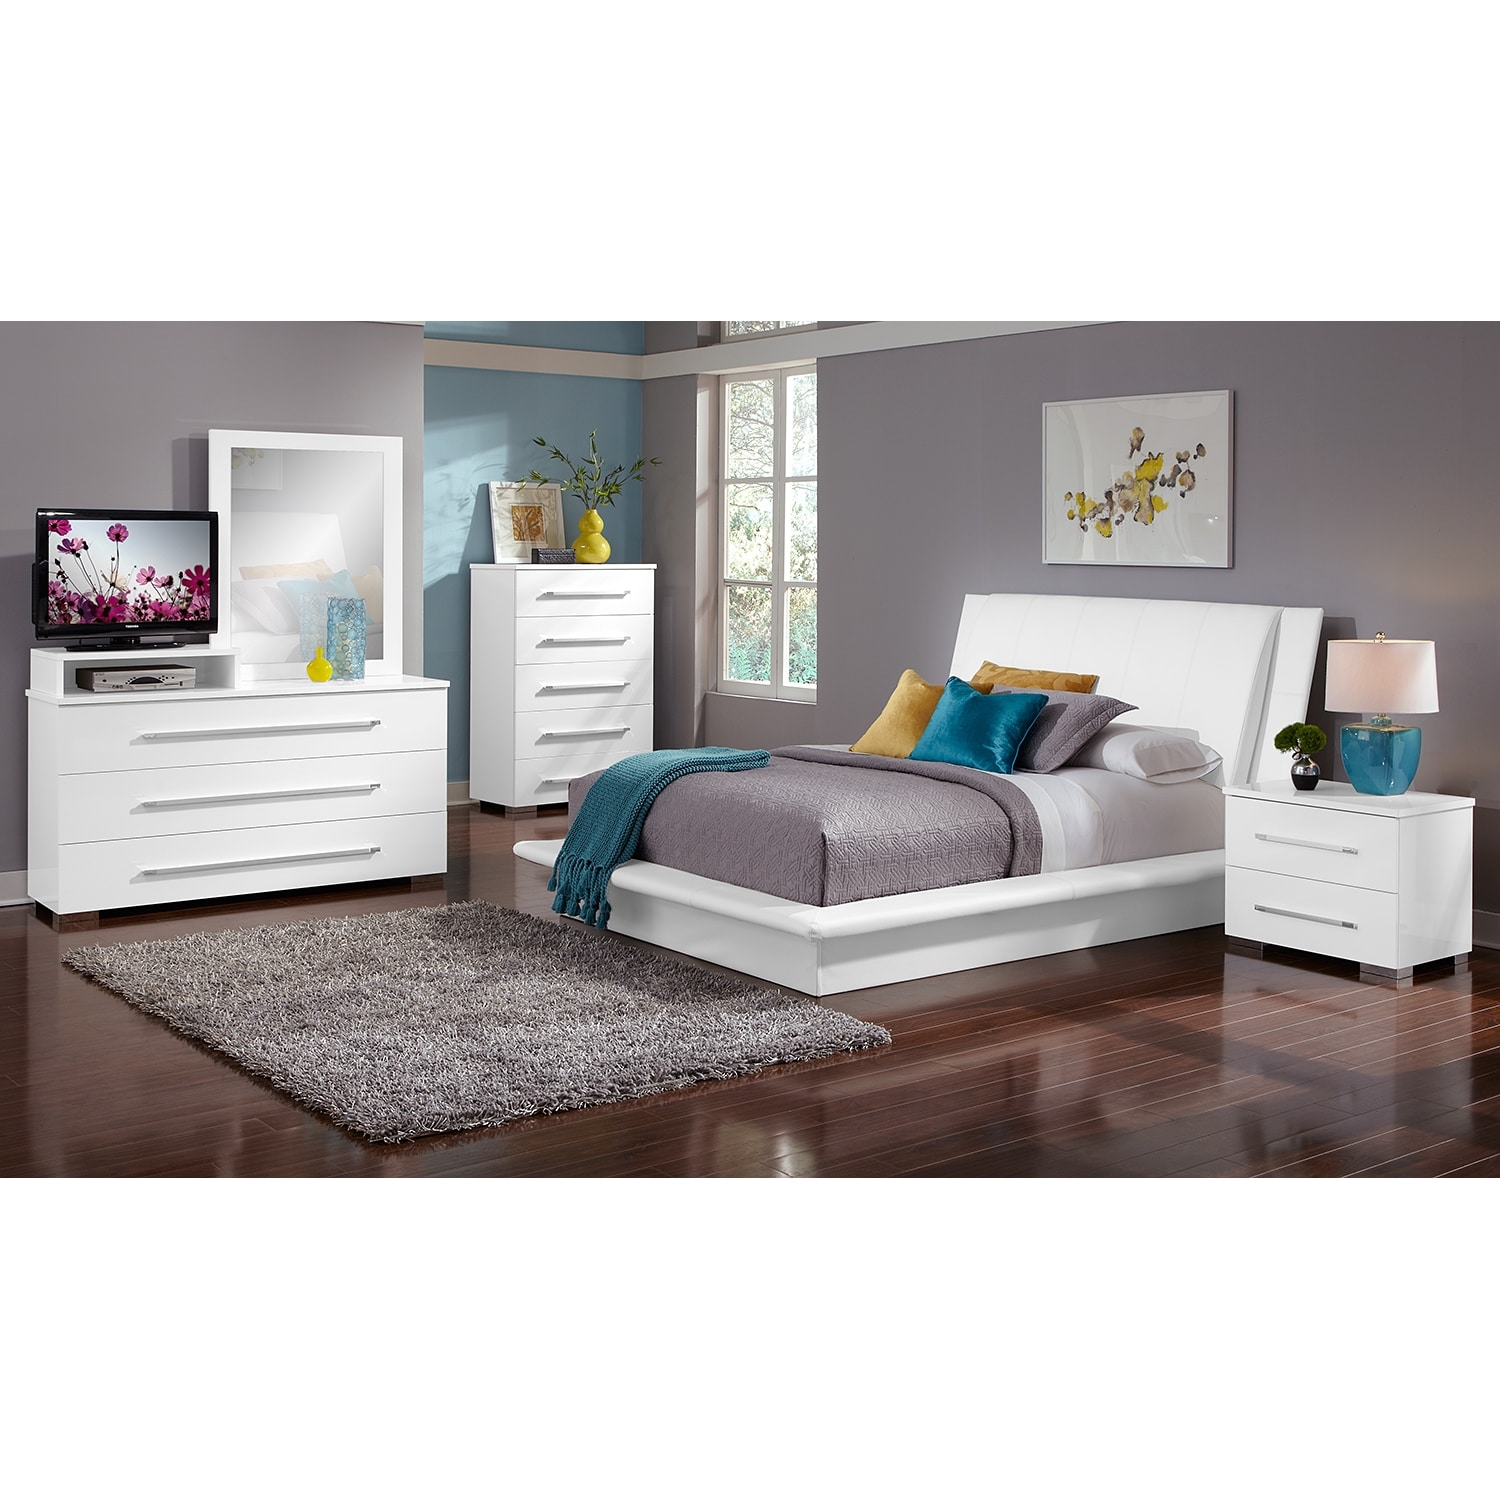 Value City Furniture Bedroom Set 28 Images Serena 5 Pc